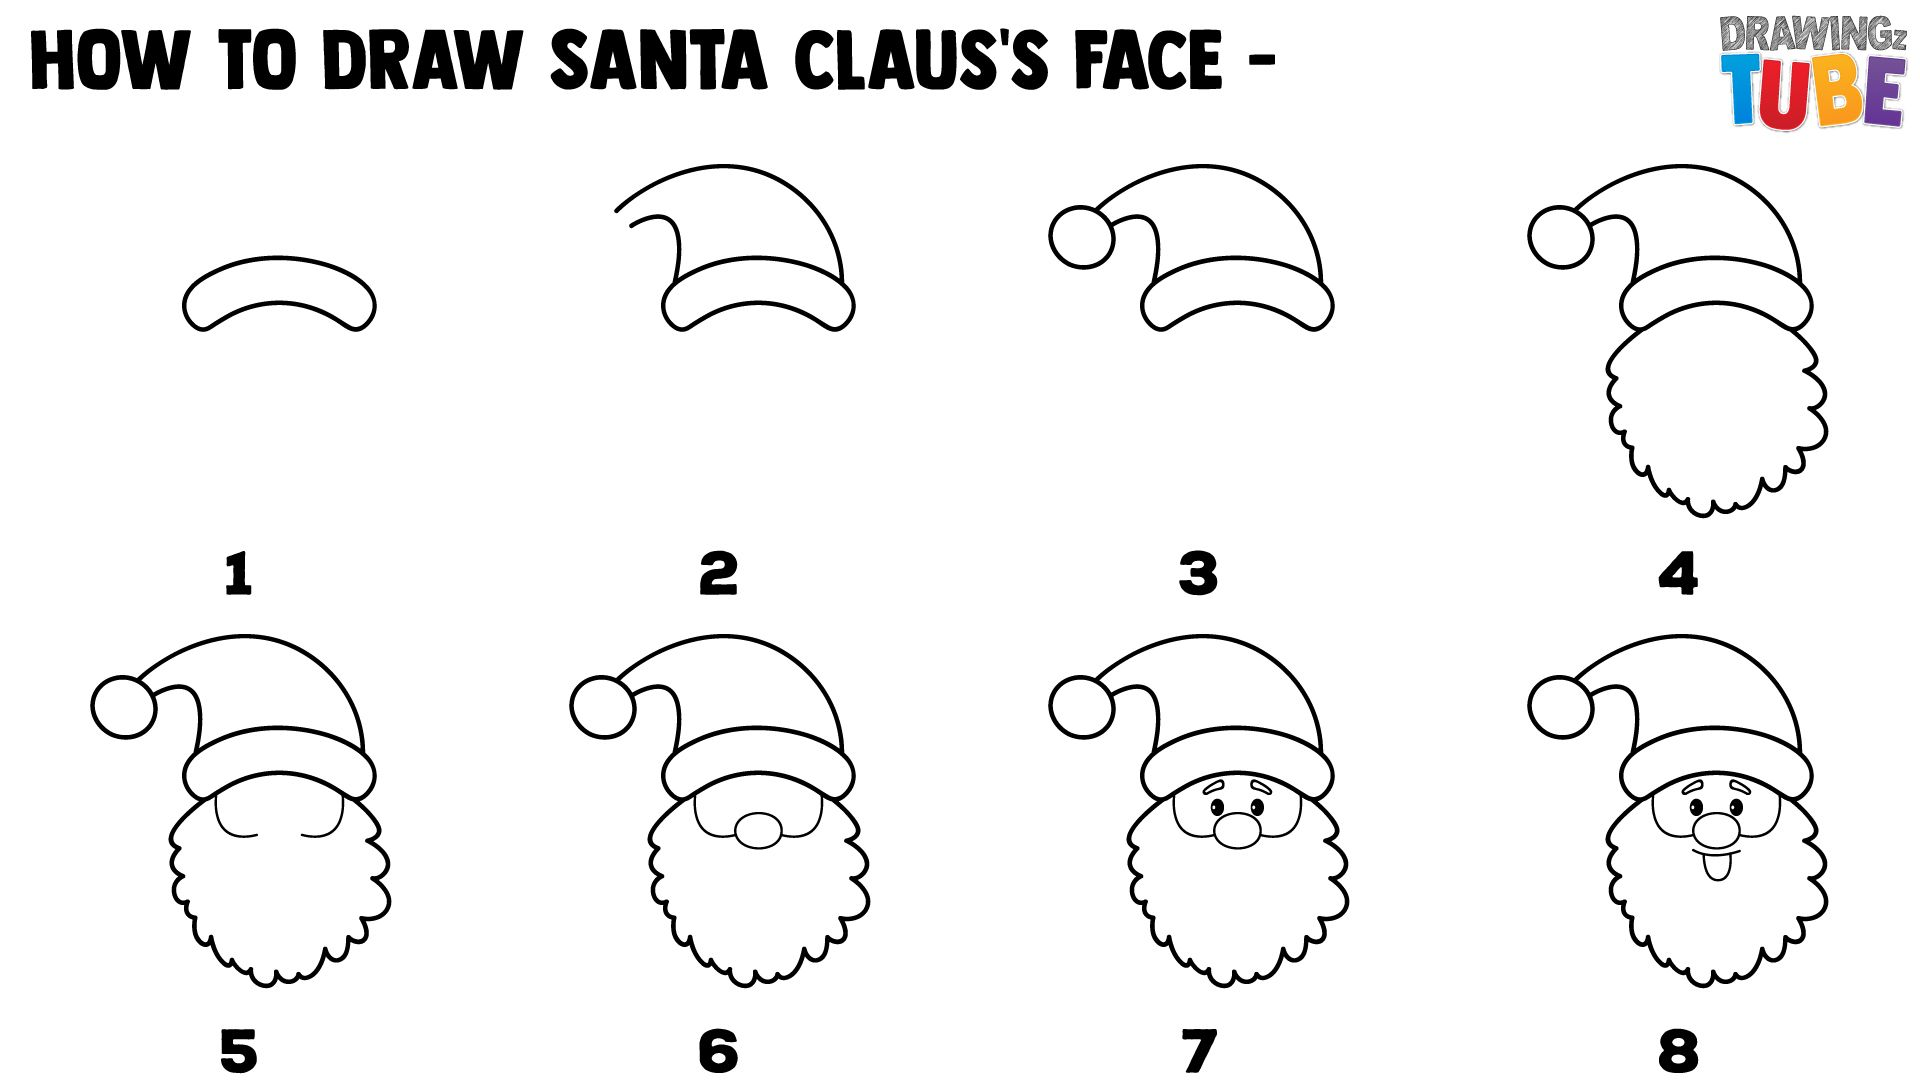 How To Draw Cute Santa Claus's Face For Kids Step by